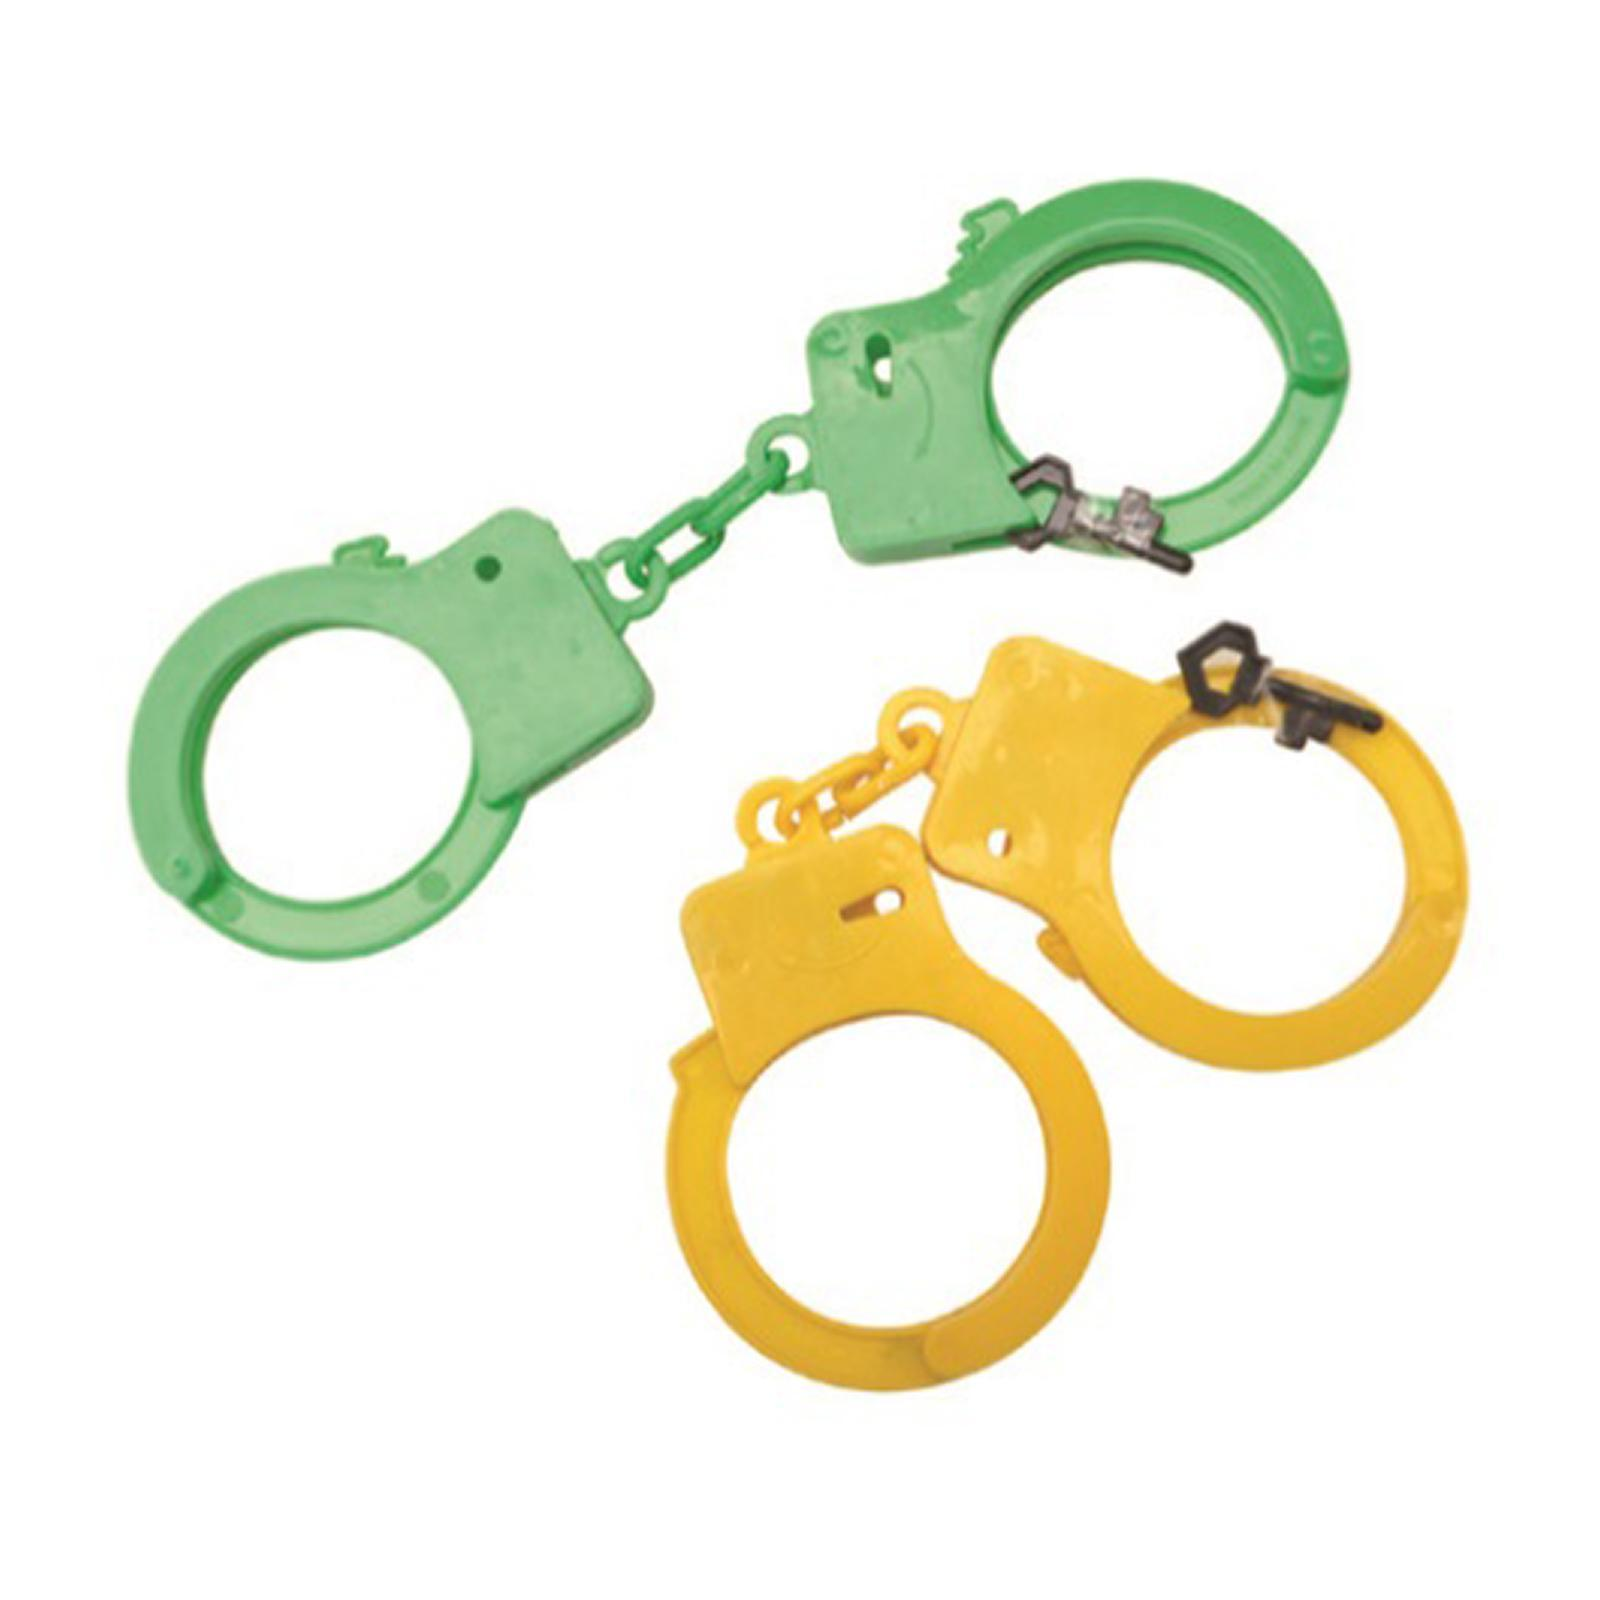 Artwrap Party Favors - Handcuffs